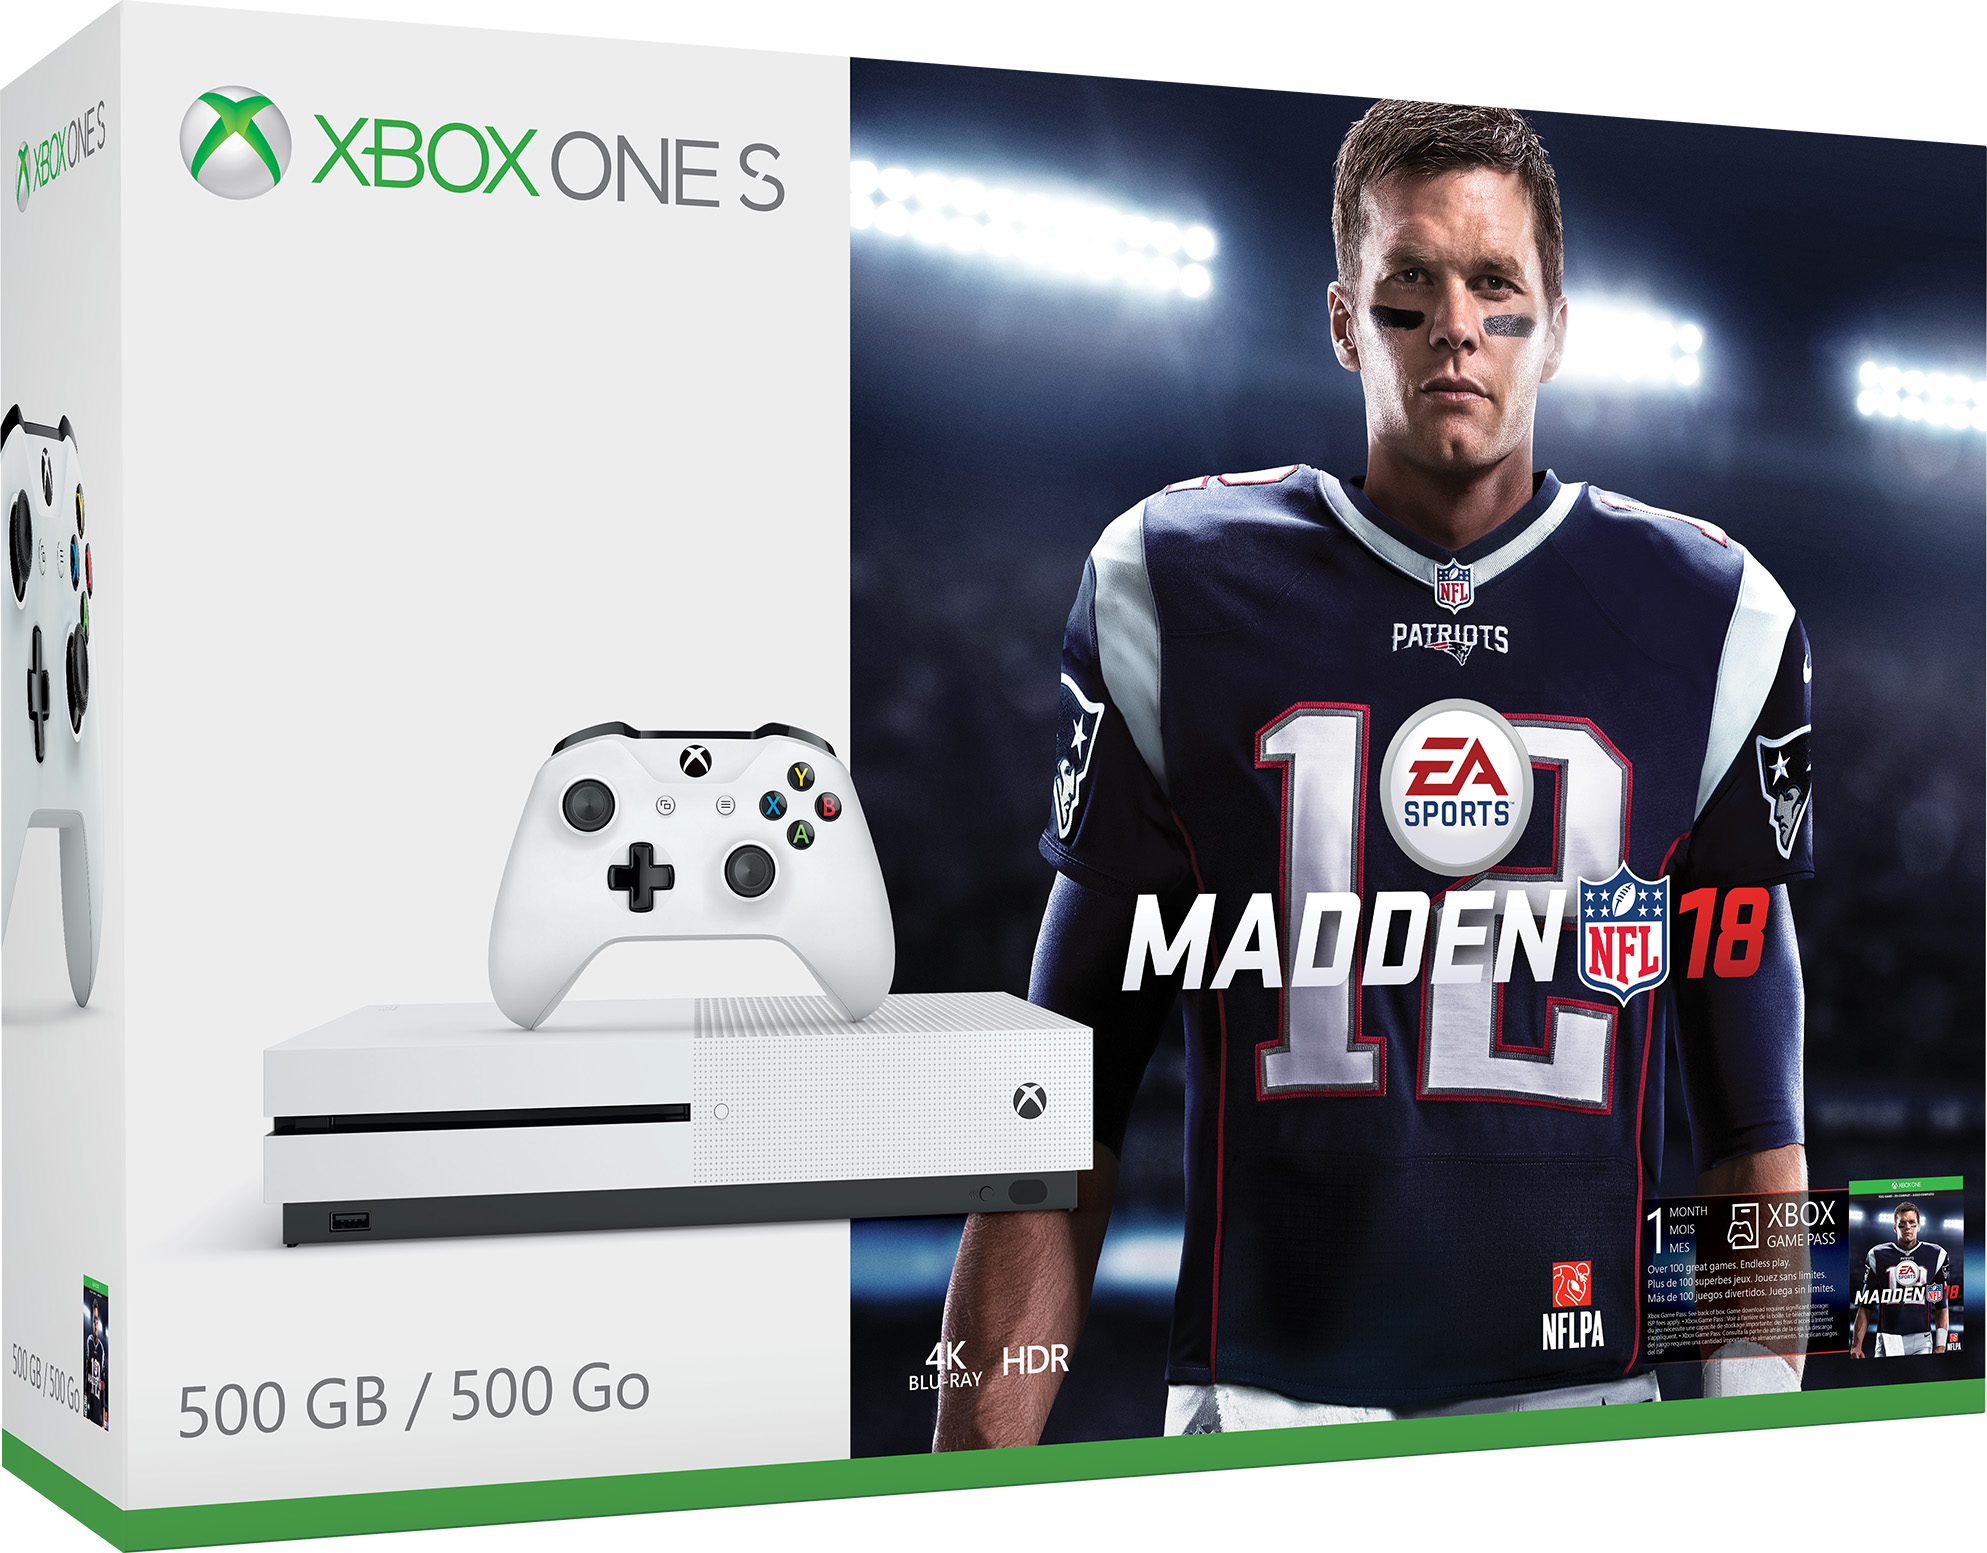 Xbox One S 500GB Console - Madden NFL 18 Bundle Deal